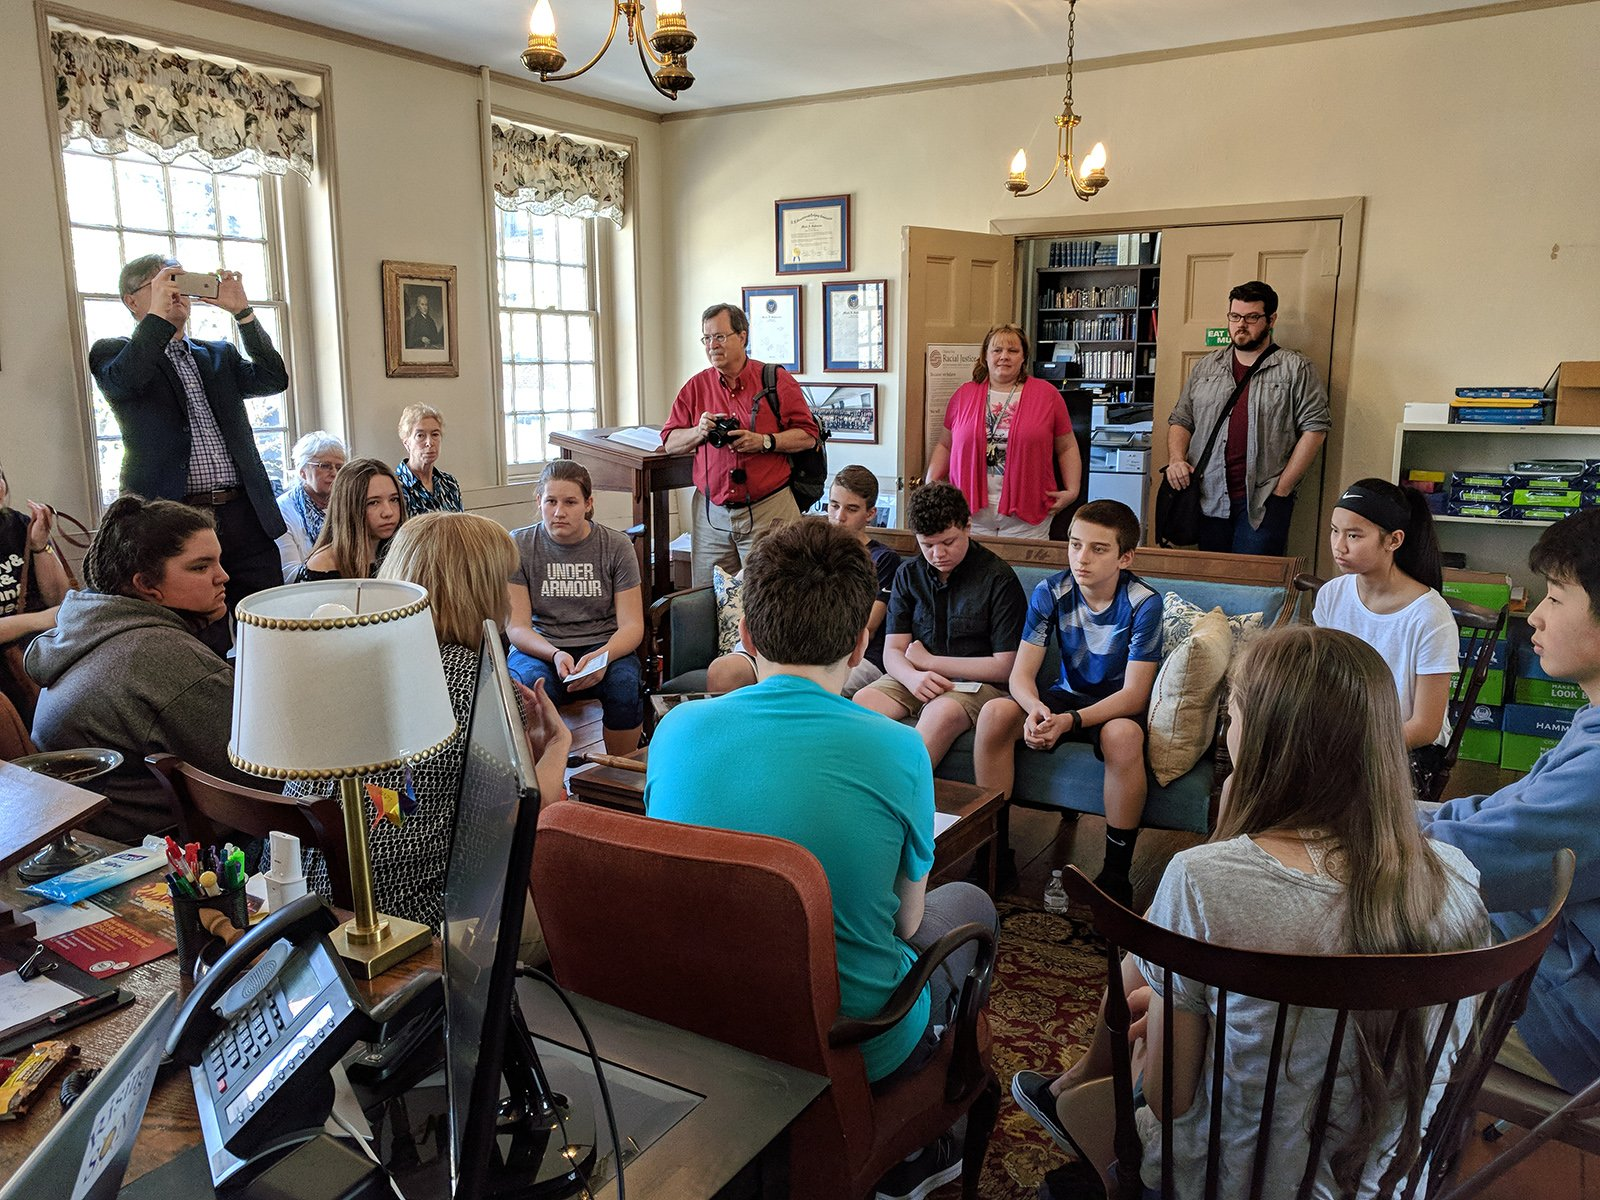 """Teen confirmation students attend a """"Time Traveler"""" program at Historic St. George's United Methodist Church in Philadelphia in 2018. Photo courtesy of HSG"""